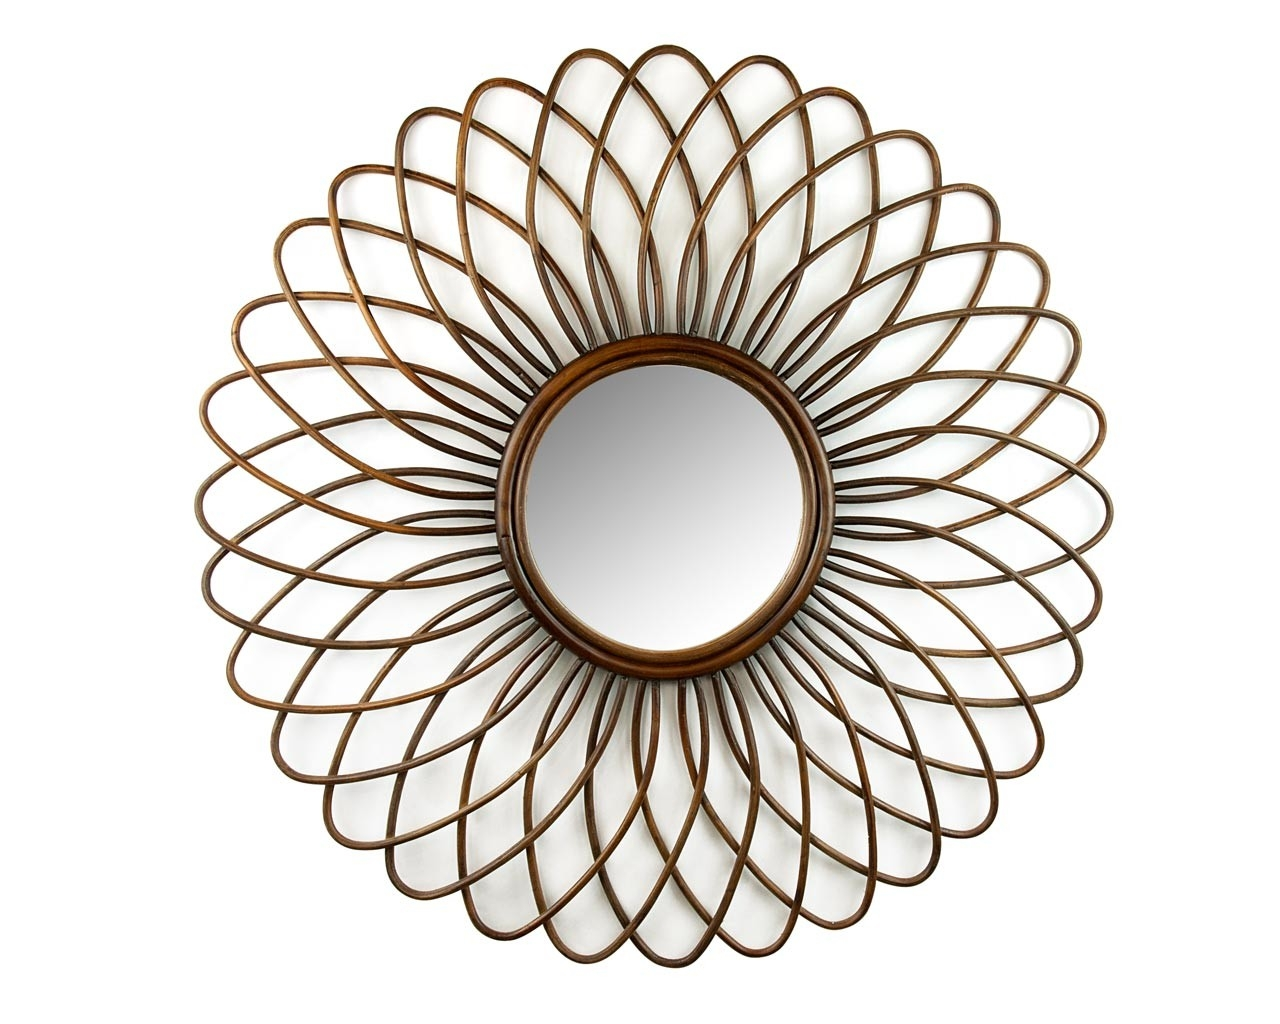 Rattan Ornate Round Mirror Handcrafted Feature Mirrors Inside Ornate Round Mirror (View 14 of 15)